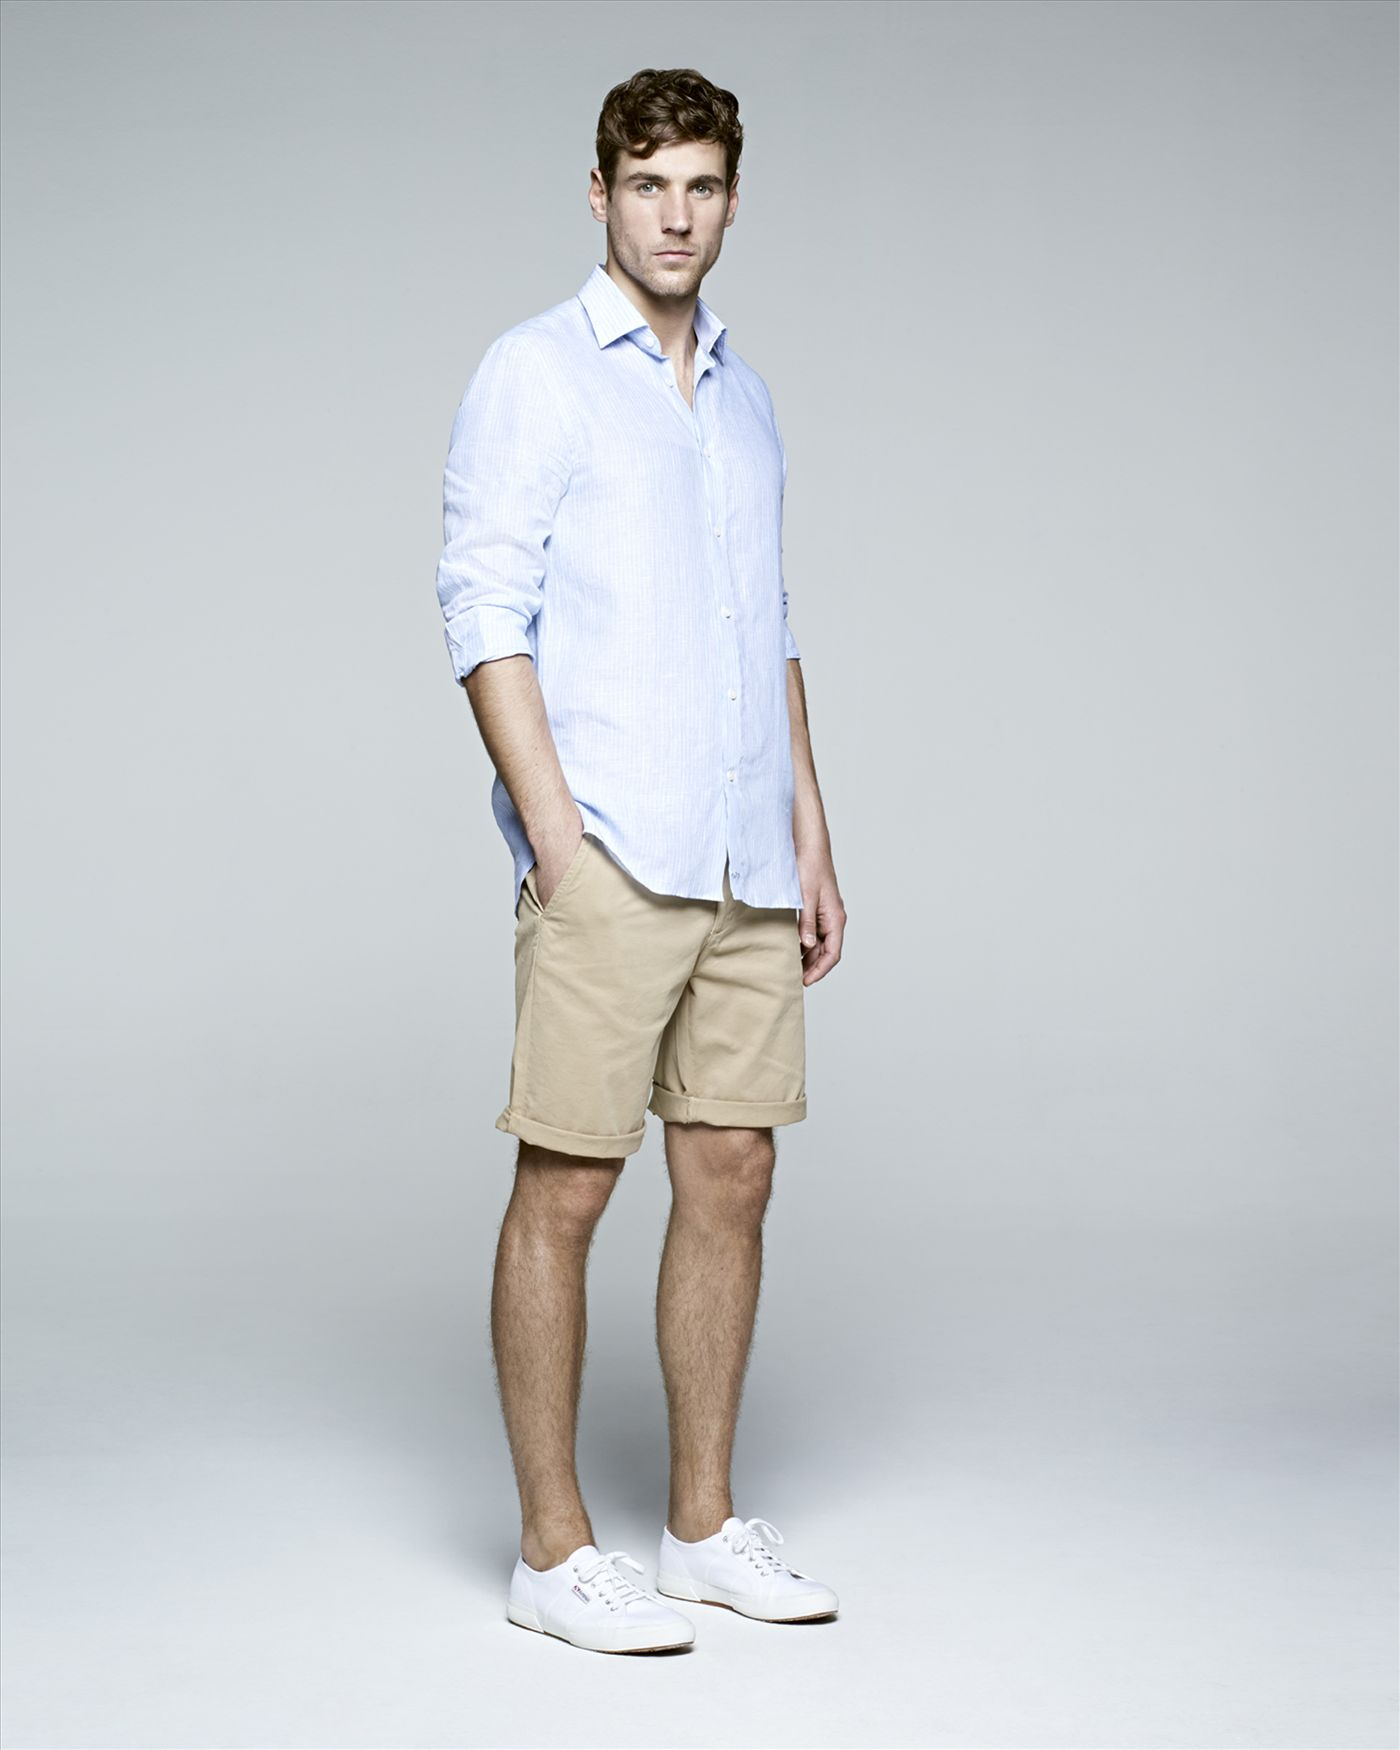 Summer outfits, knee-skimming shorts, Best Summer Outfits, Best Free Outfits, Best Summer Outfits For Men, Combine Beige, Go For Stripes